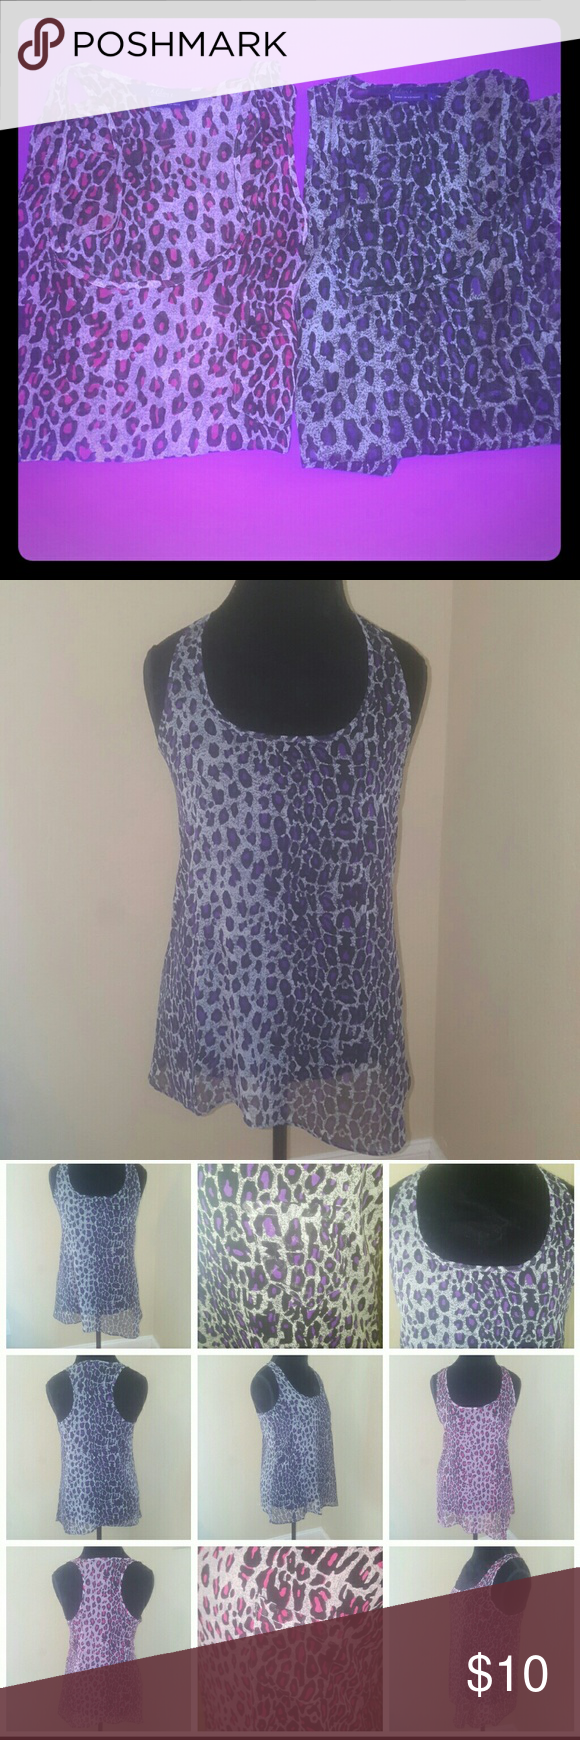 2 Sleeveless Sheer Asymmetrical Tanks NWOT Bundle of 2 Sleeveless Animal Print Sheer Asymmetrical Tanks. Size Large in Juniors. By Miley Cyrus. 1 pink & 1 purple. 100% Polyester. These look great with a black tank & leggings. Both NWOT. No holes, rips, stains, piling, loose threads, etc. Very pretty. Miley Cyrus  Tops Tank Tops